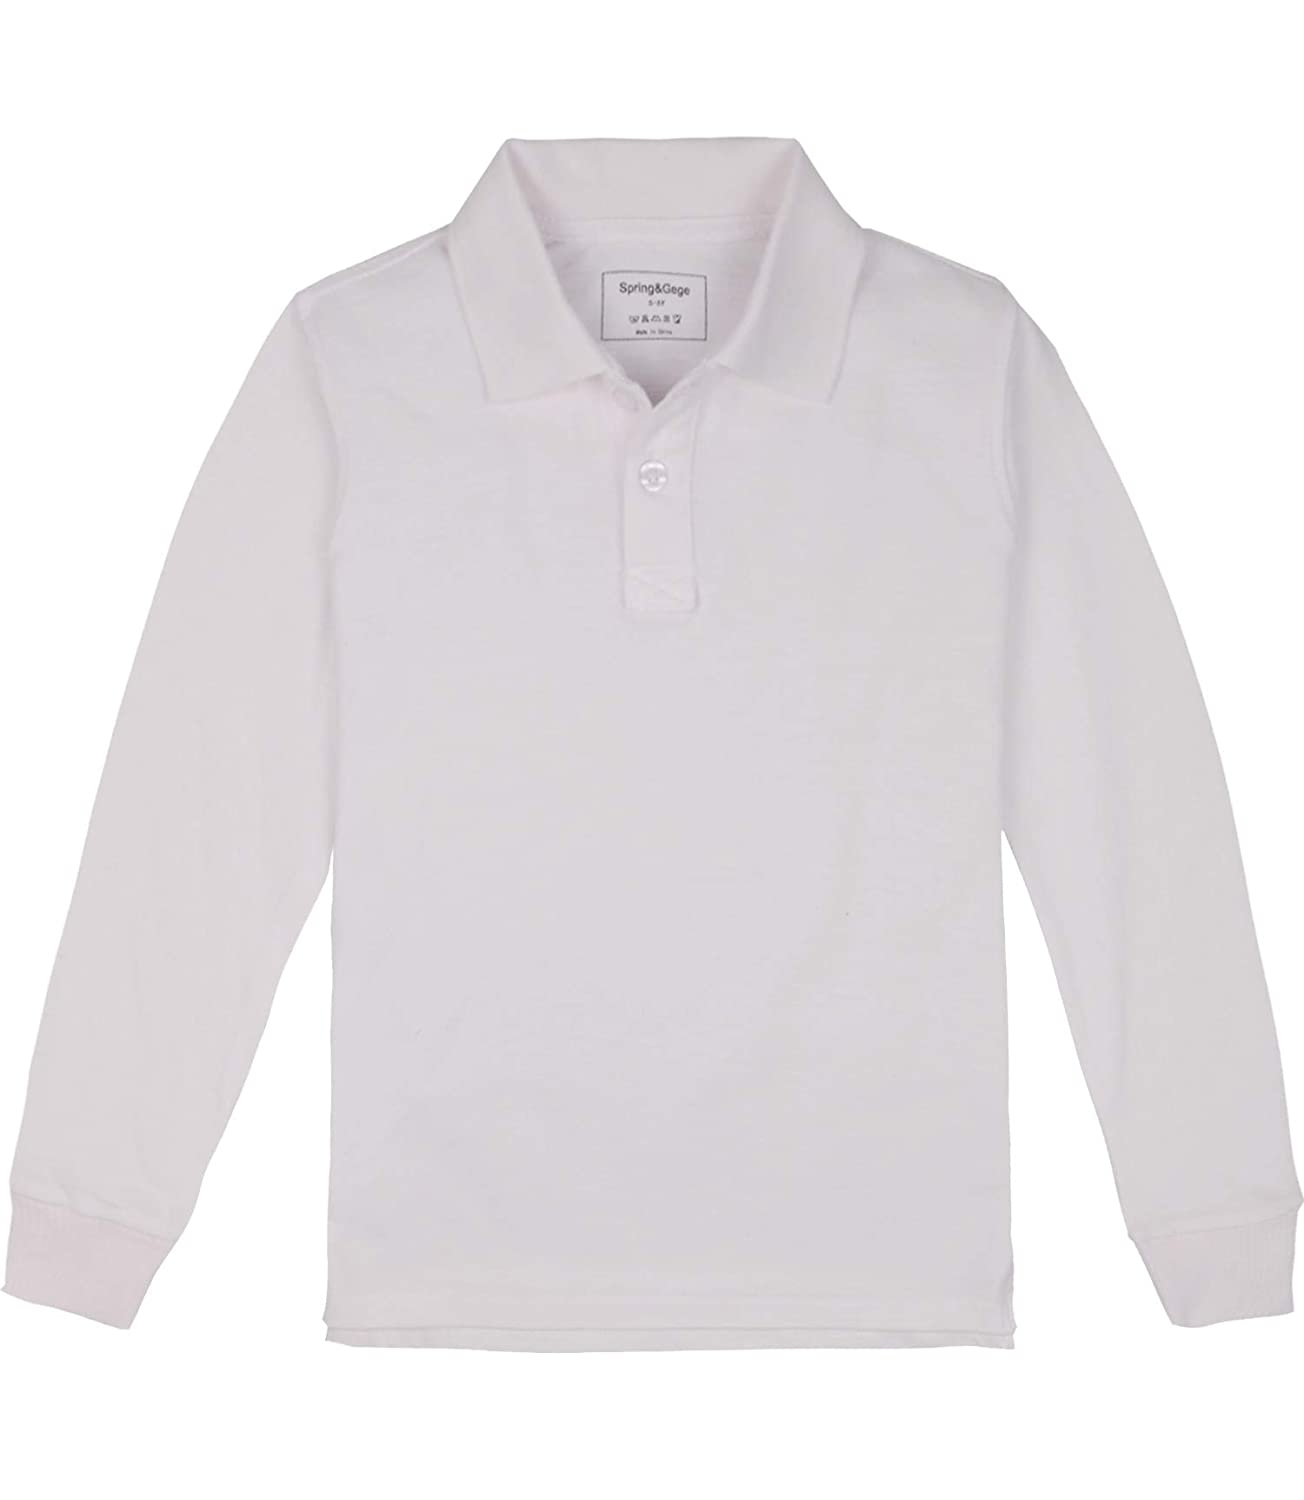 Spring/&Gege Kids//Childrens Long Sleeve Uniform Pique Polo Shirt